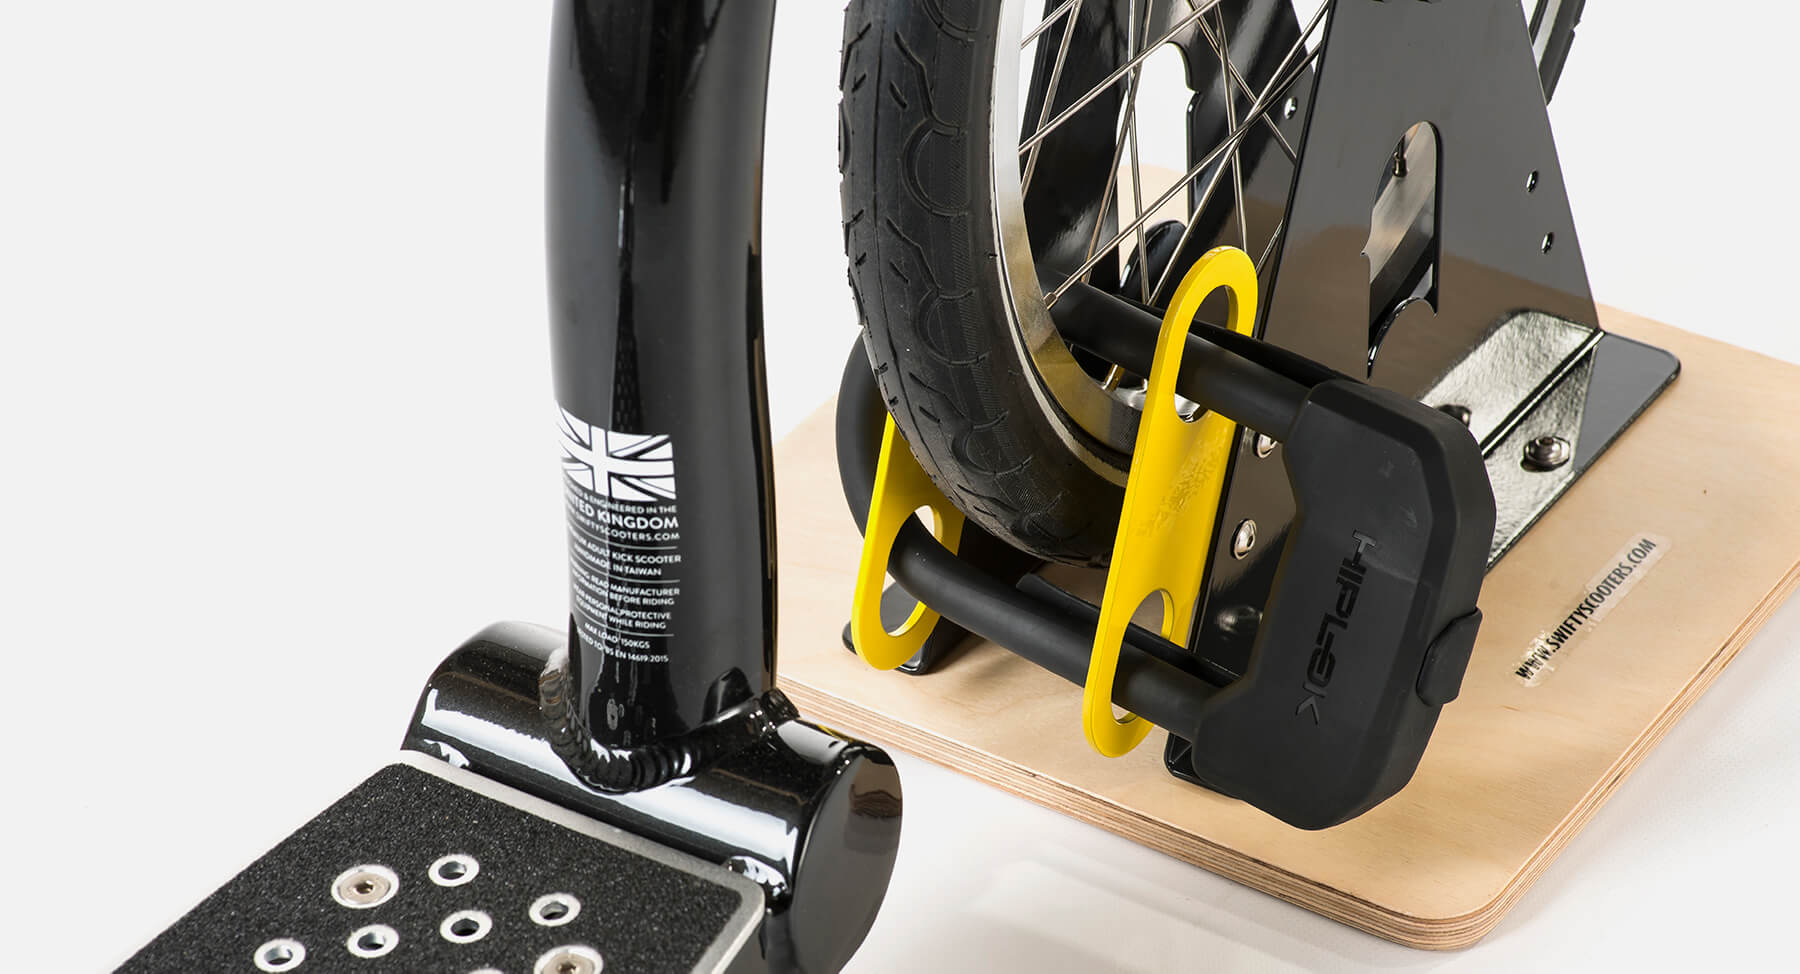 folding scooter adult, best commuter scooter for adults, scooters for adult